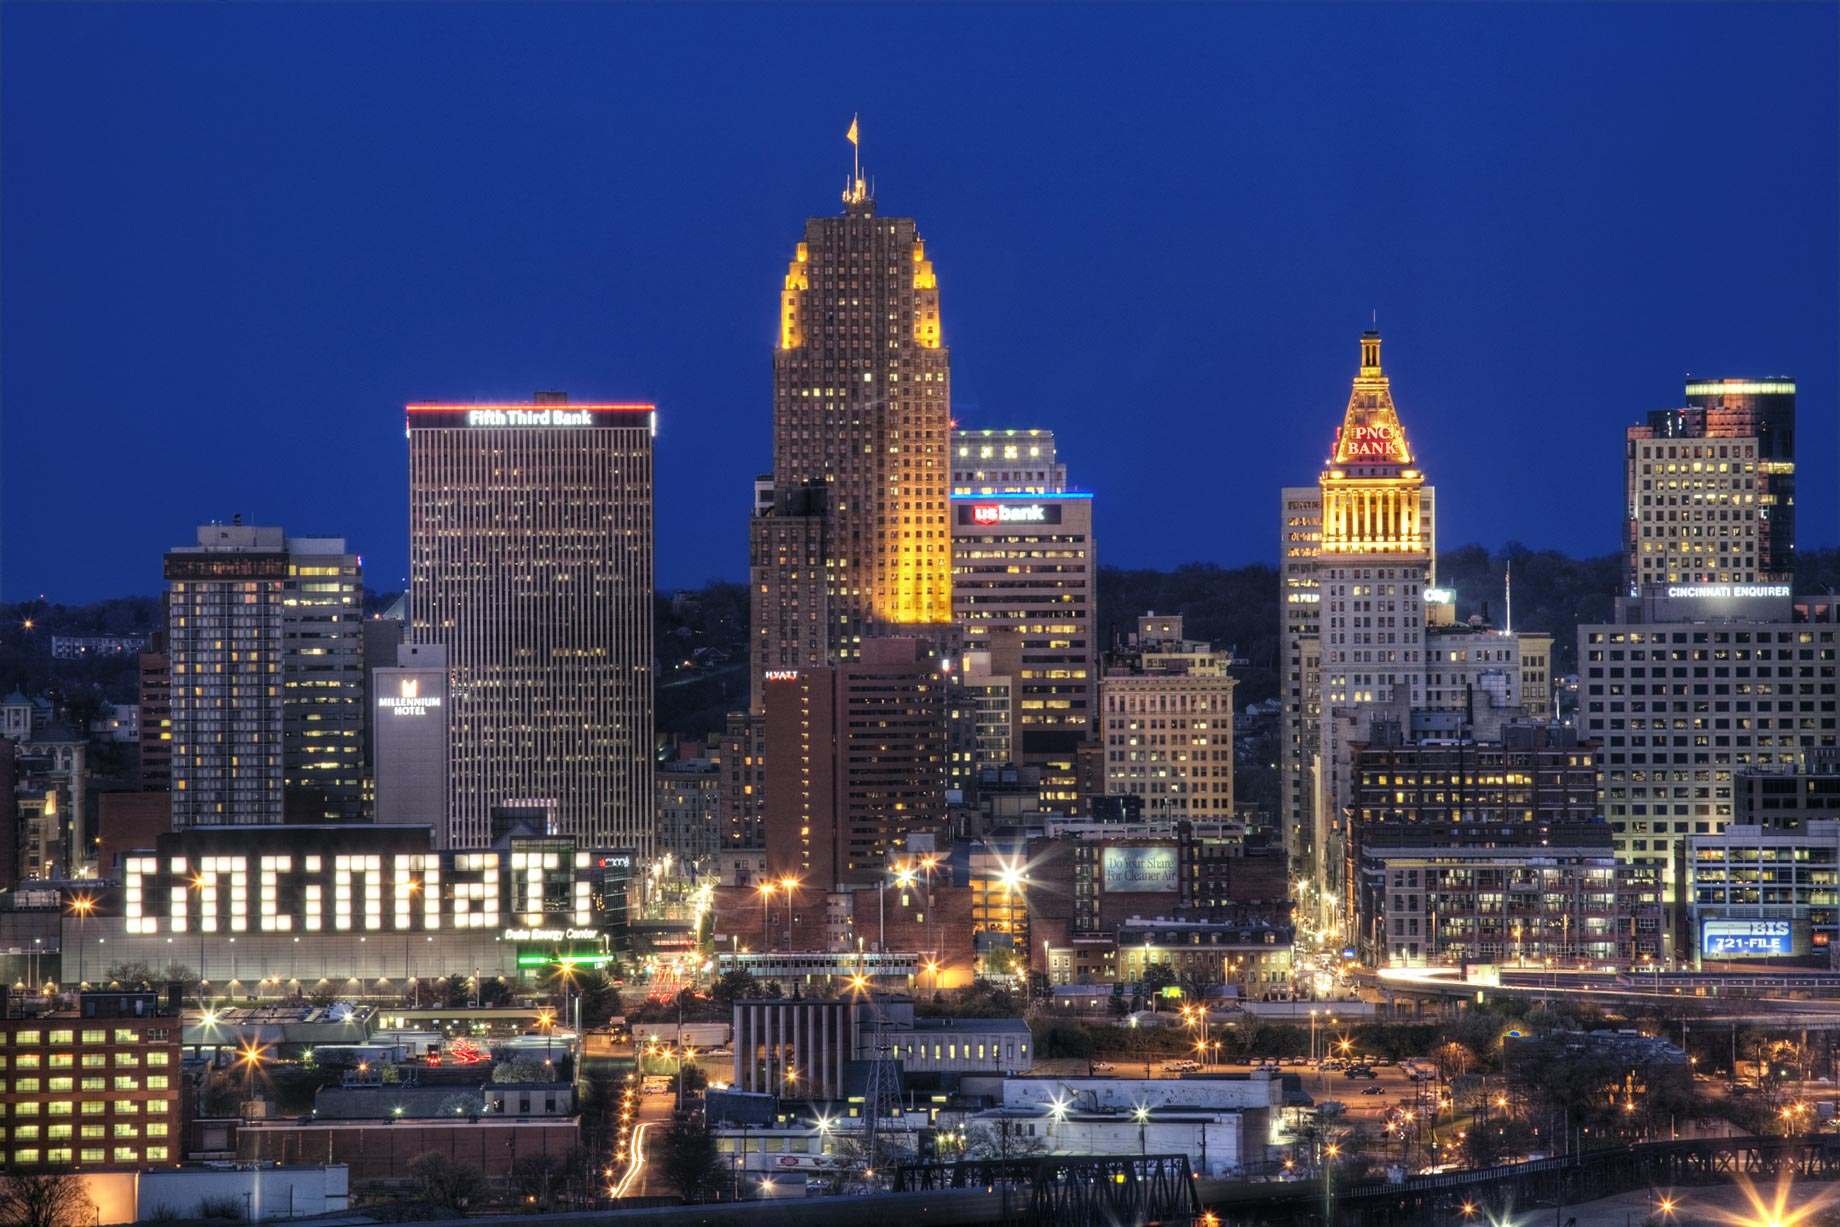 Cincinnati Landscape Night